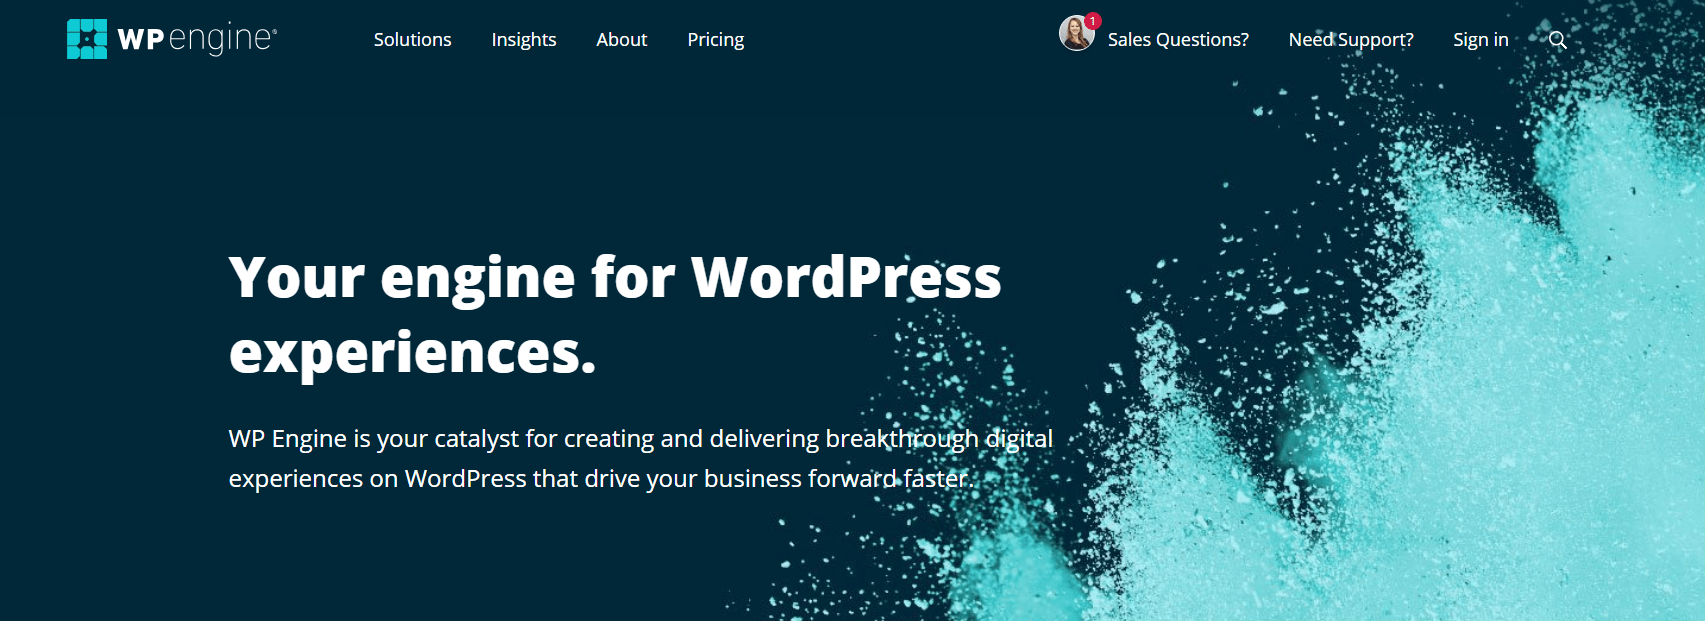 Cheap WordPress Hosting  WP Engine Offers